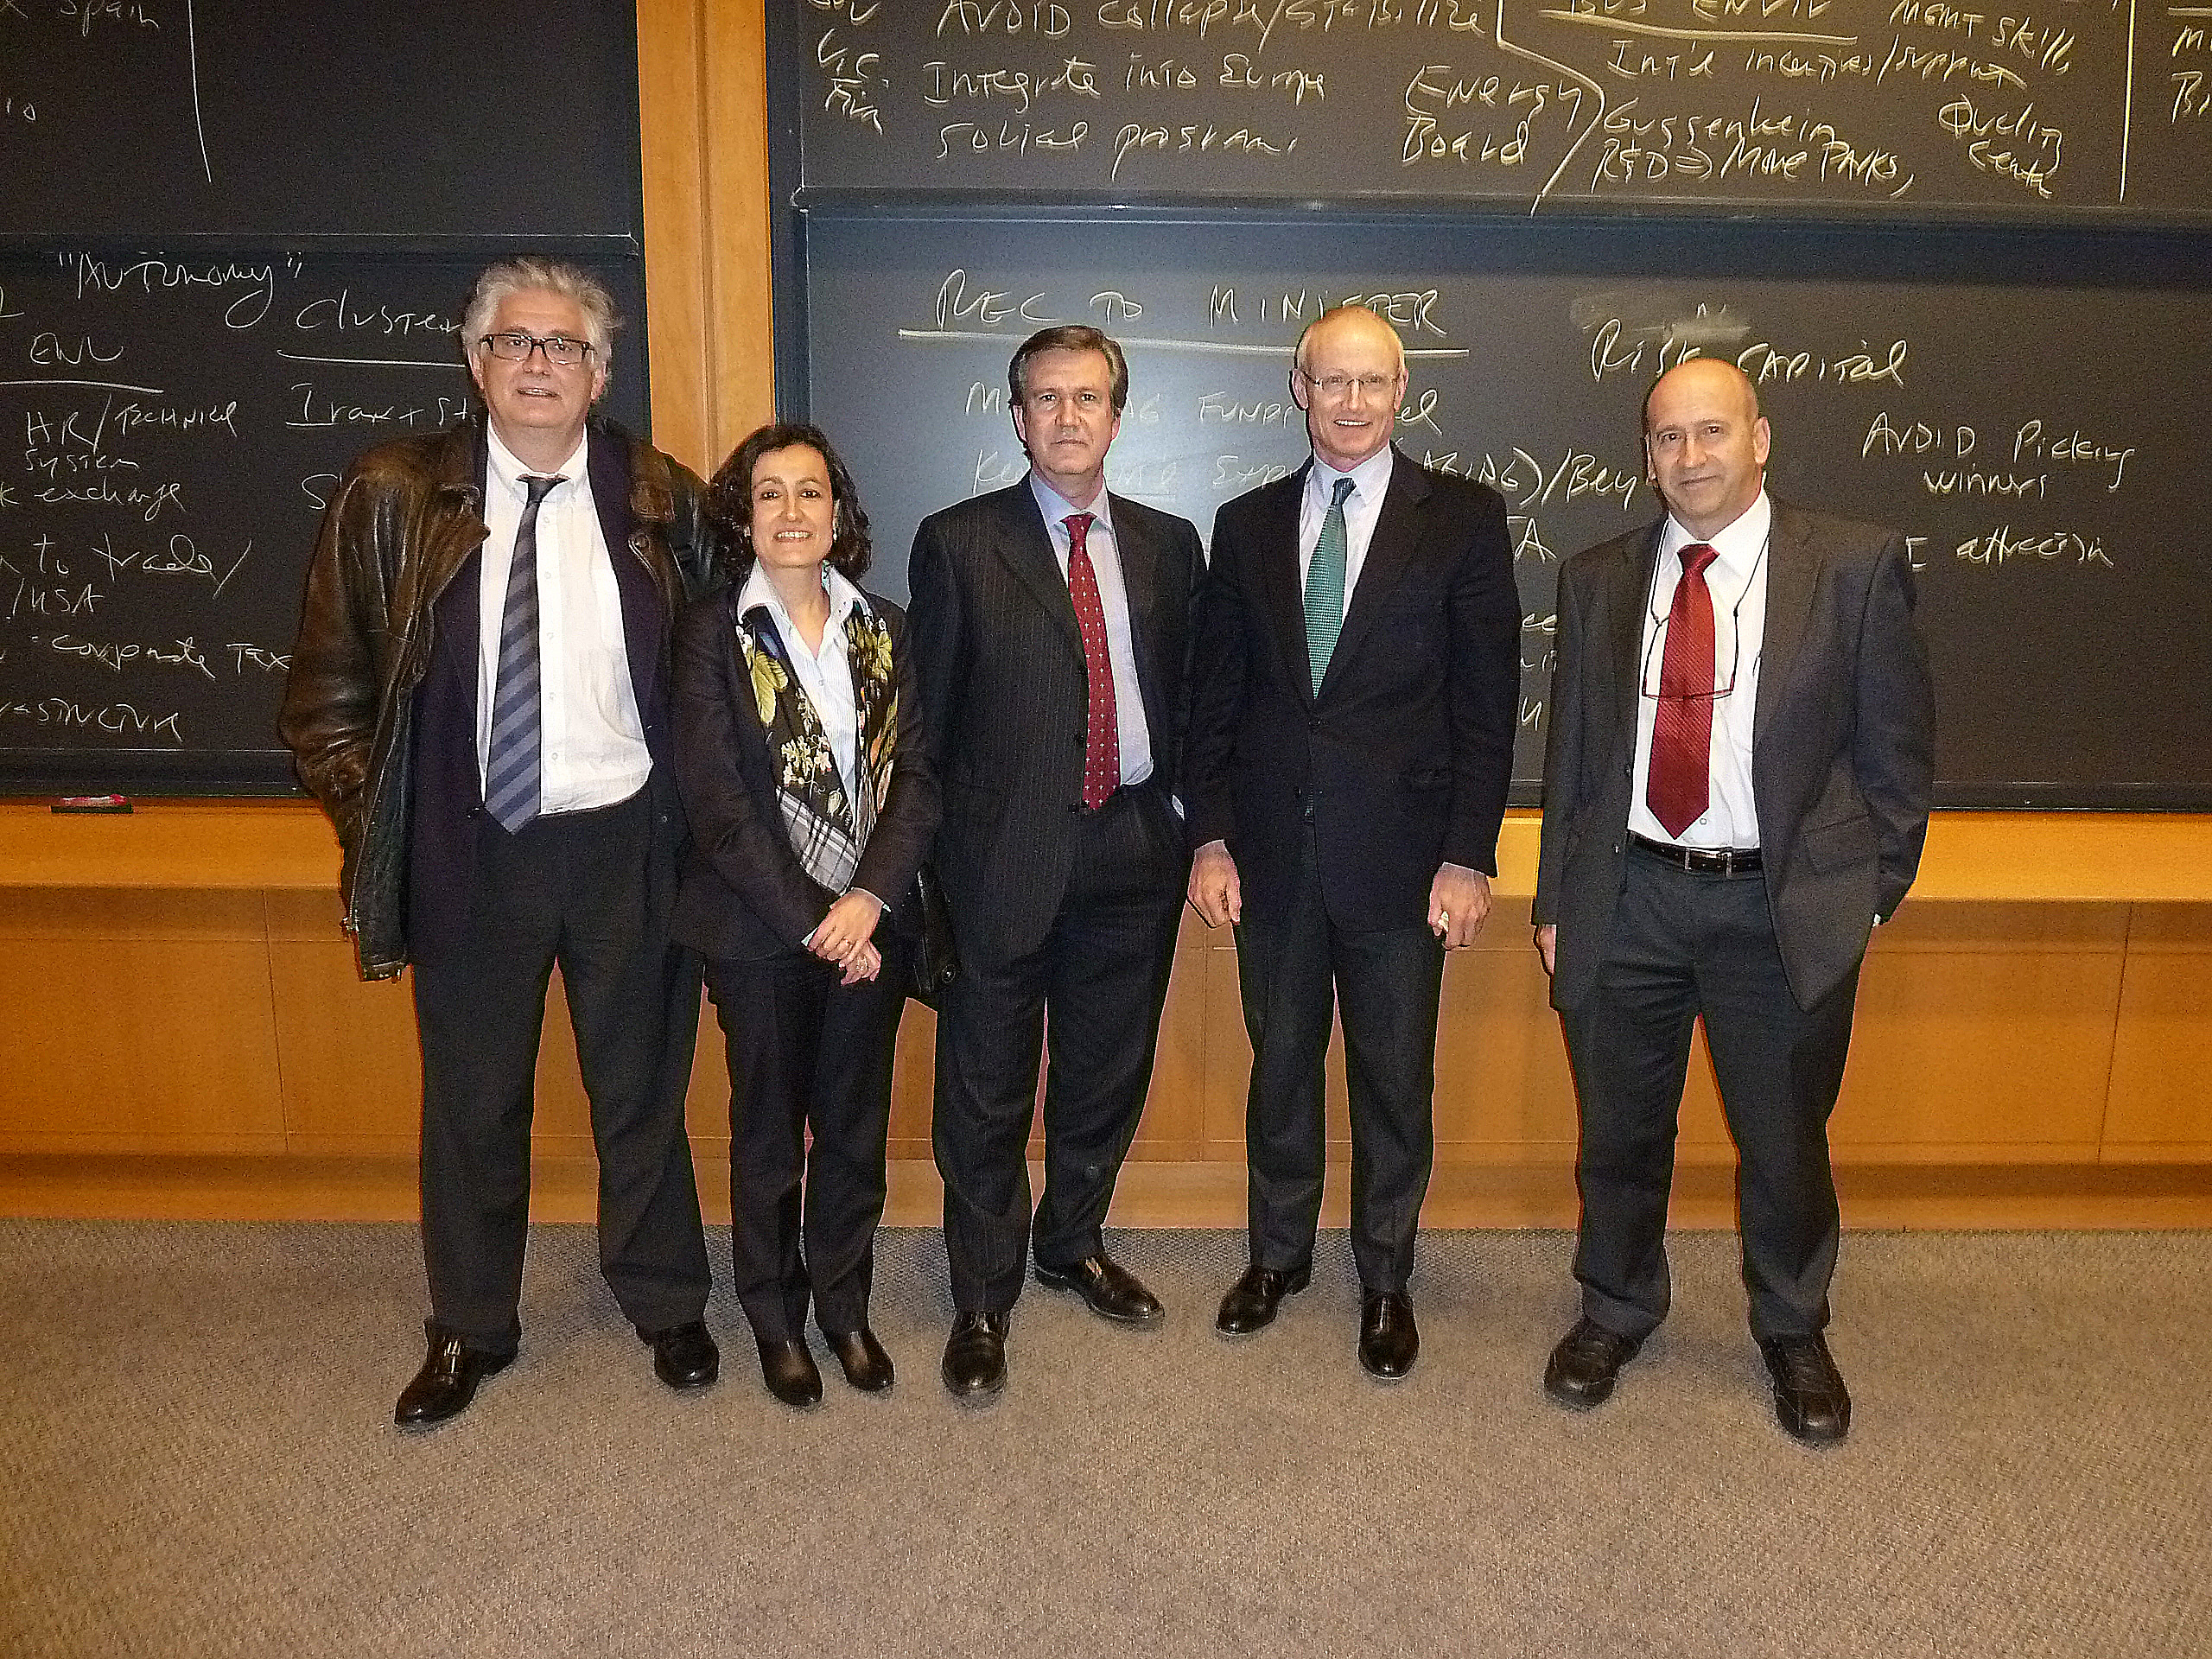 Harvard University recognizes the Basque Country as an example of economic development